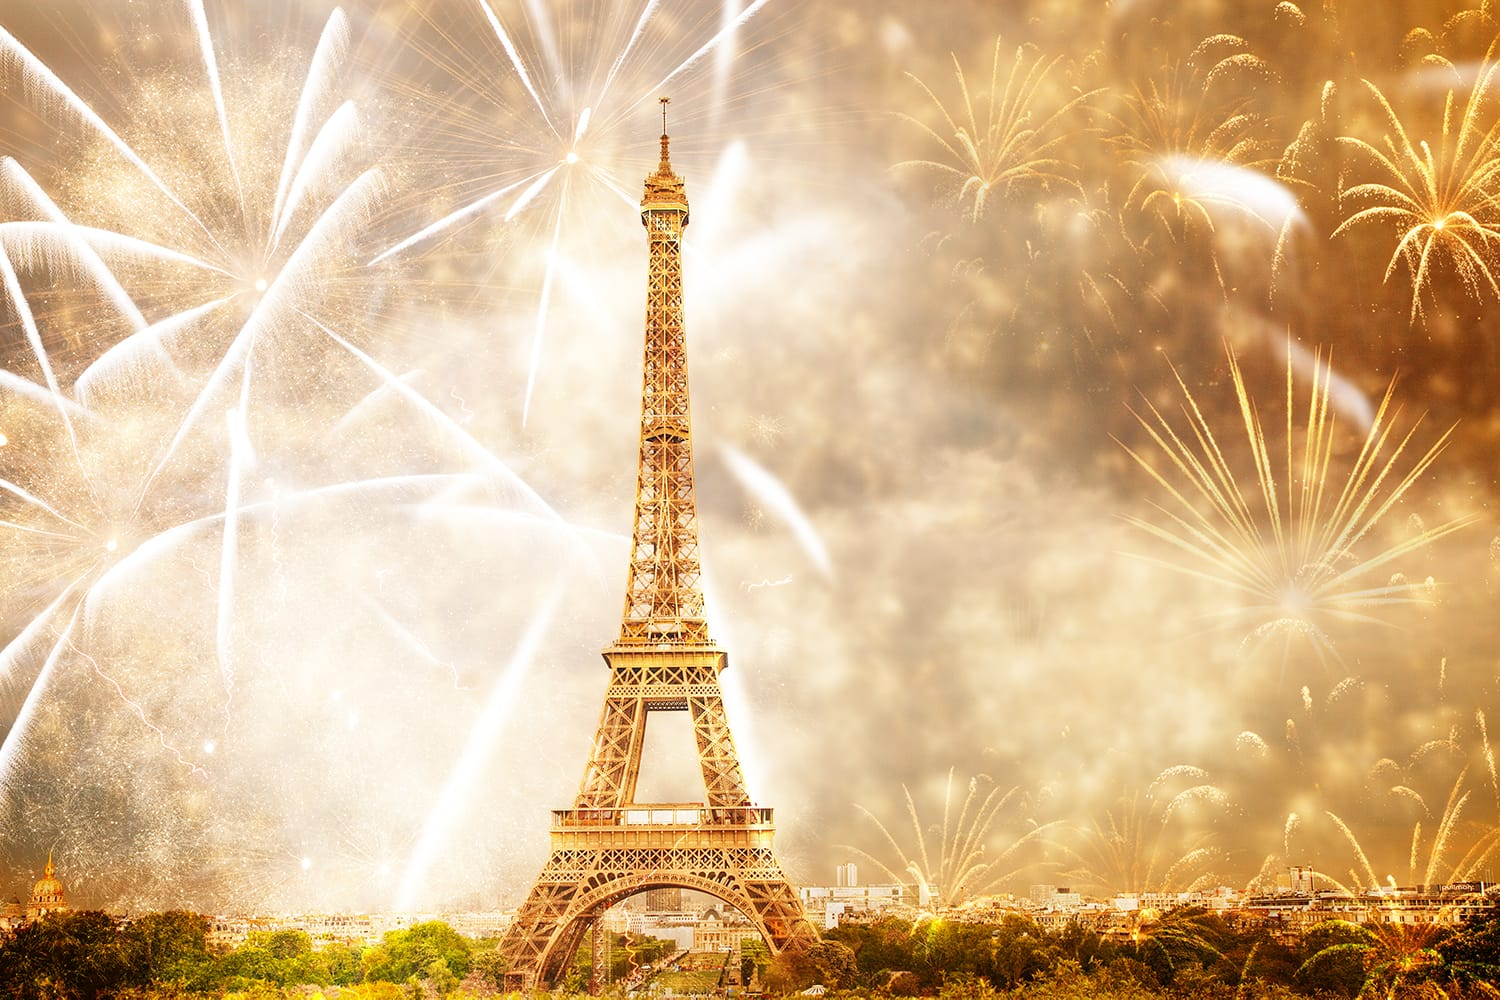 Fireworks on New Years Eve in front of Eiffel Tower in Paris, France